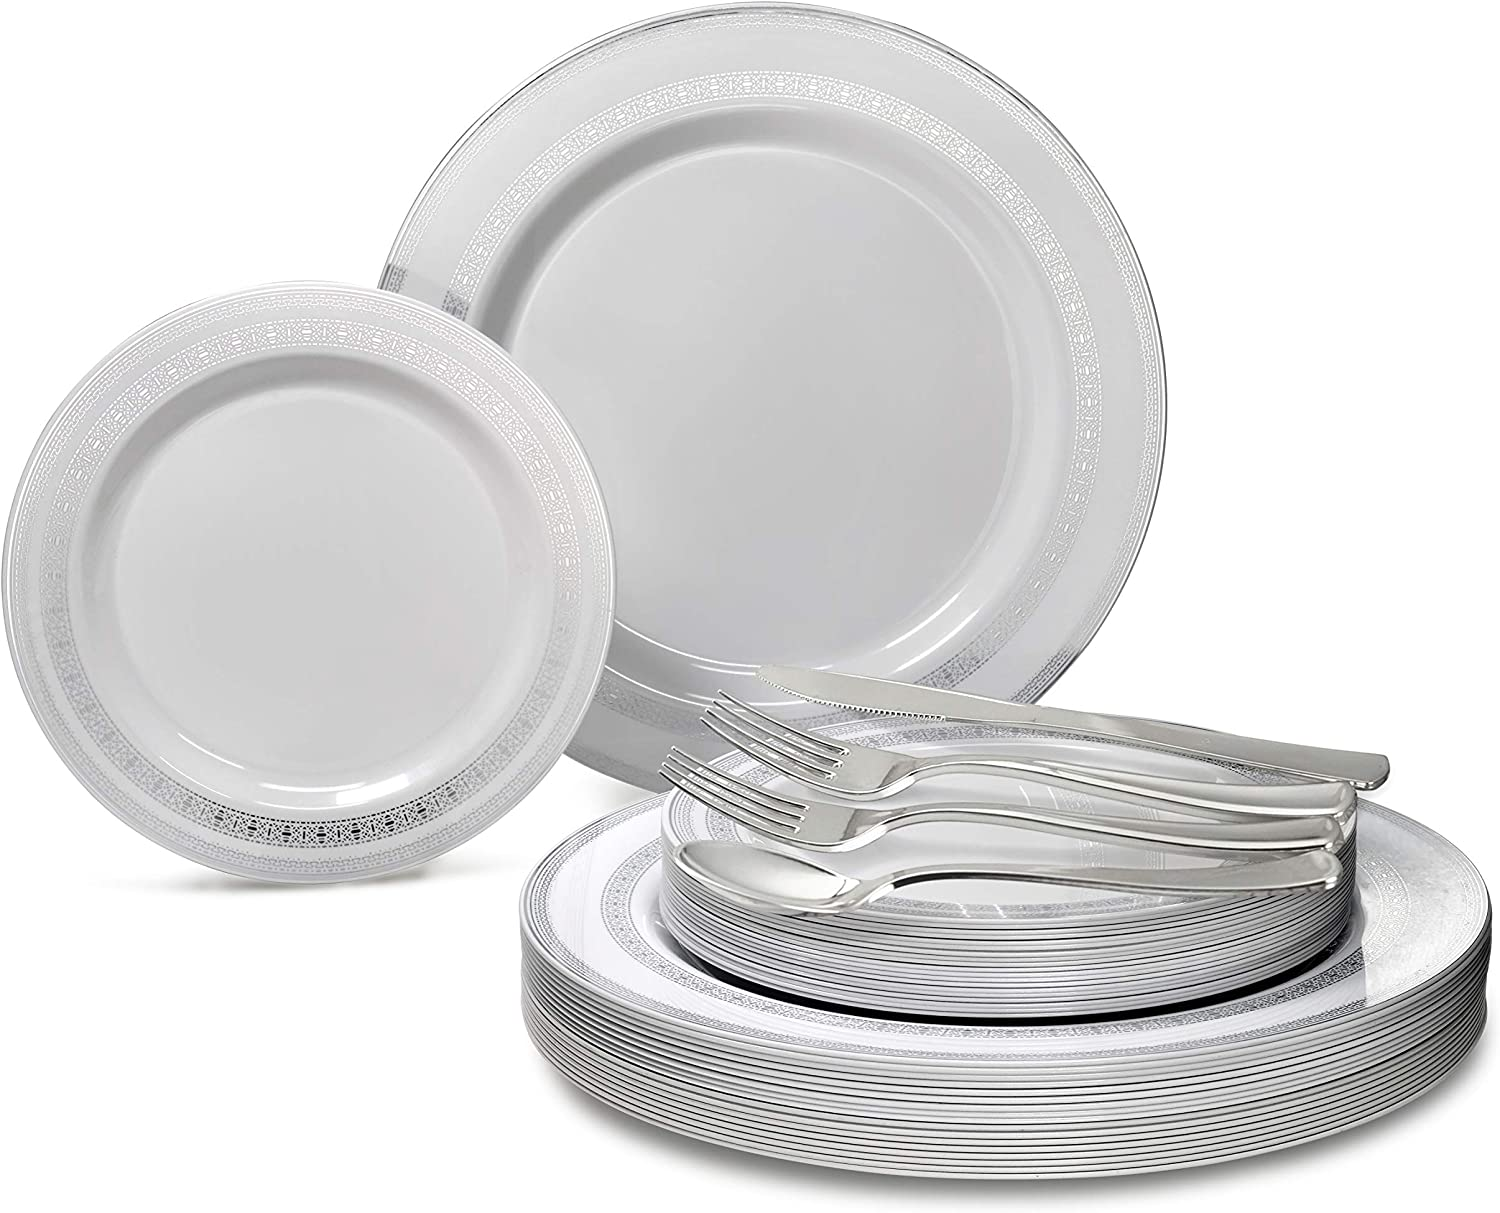 OCCASIONS 360 PCS   60 GUEST Wedding Disposable Plastic Plate and Silverware Combo Set (Lace in White & Silver)